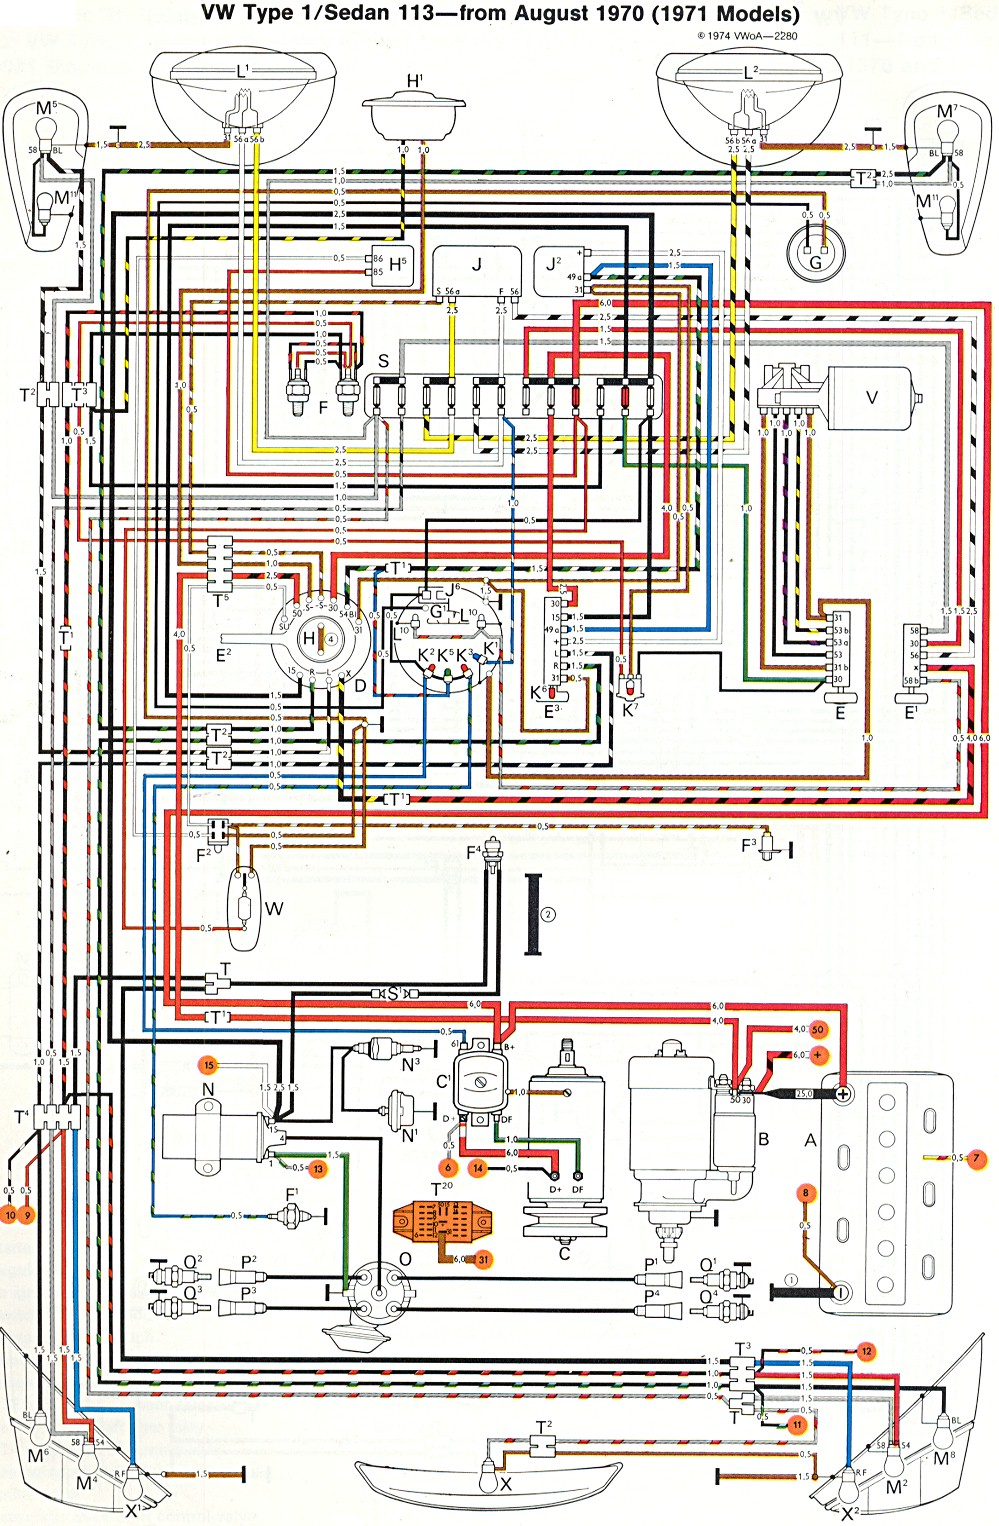 bug_super_71 1971 super beetle wiring diagram thegoldenbug com super beetle wiring diagram at bayanpartner.co